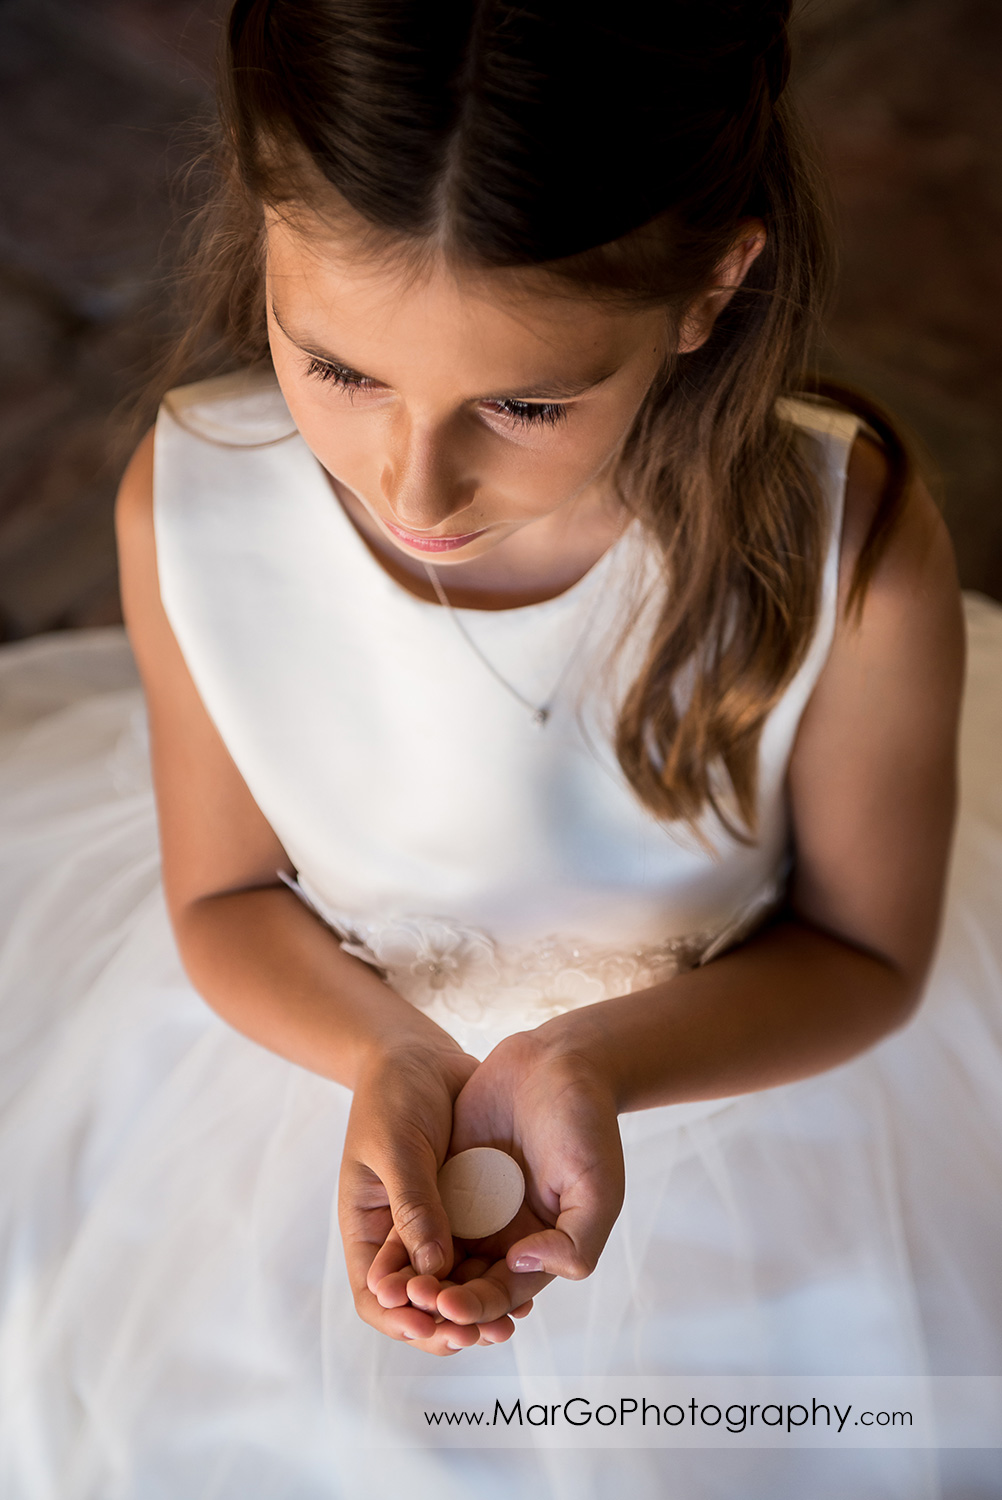 first communion girl in white dress holding wafer at Cafe Wisteria in Menlo Park